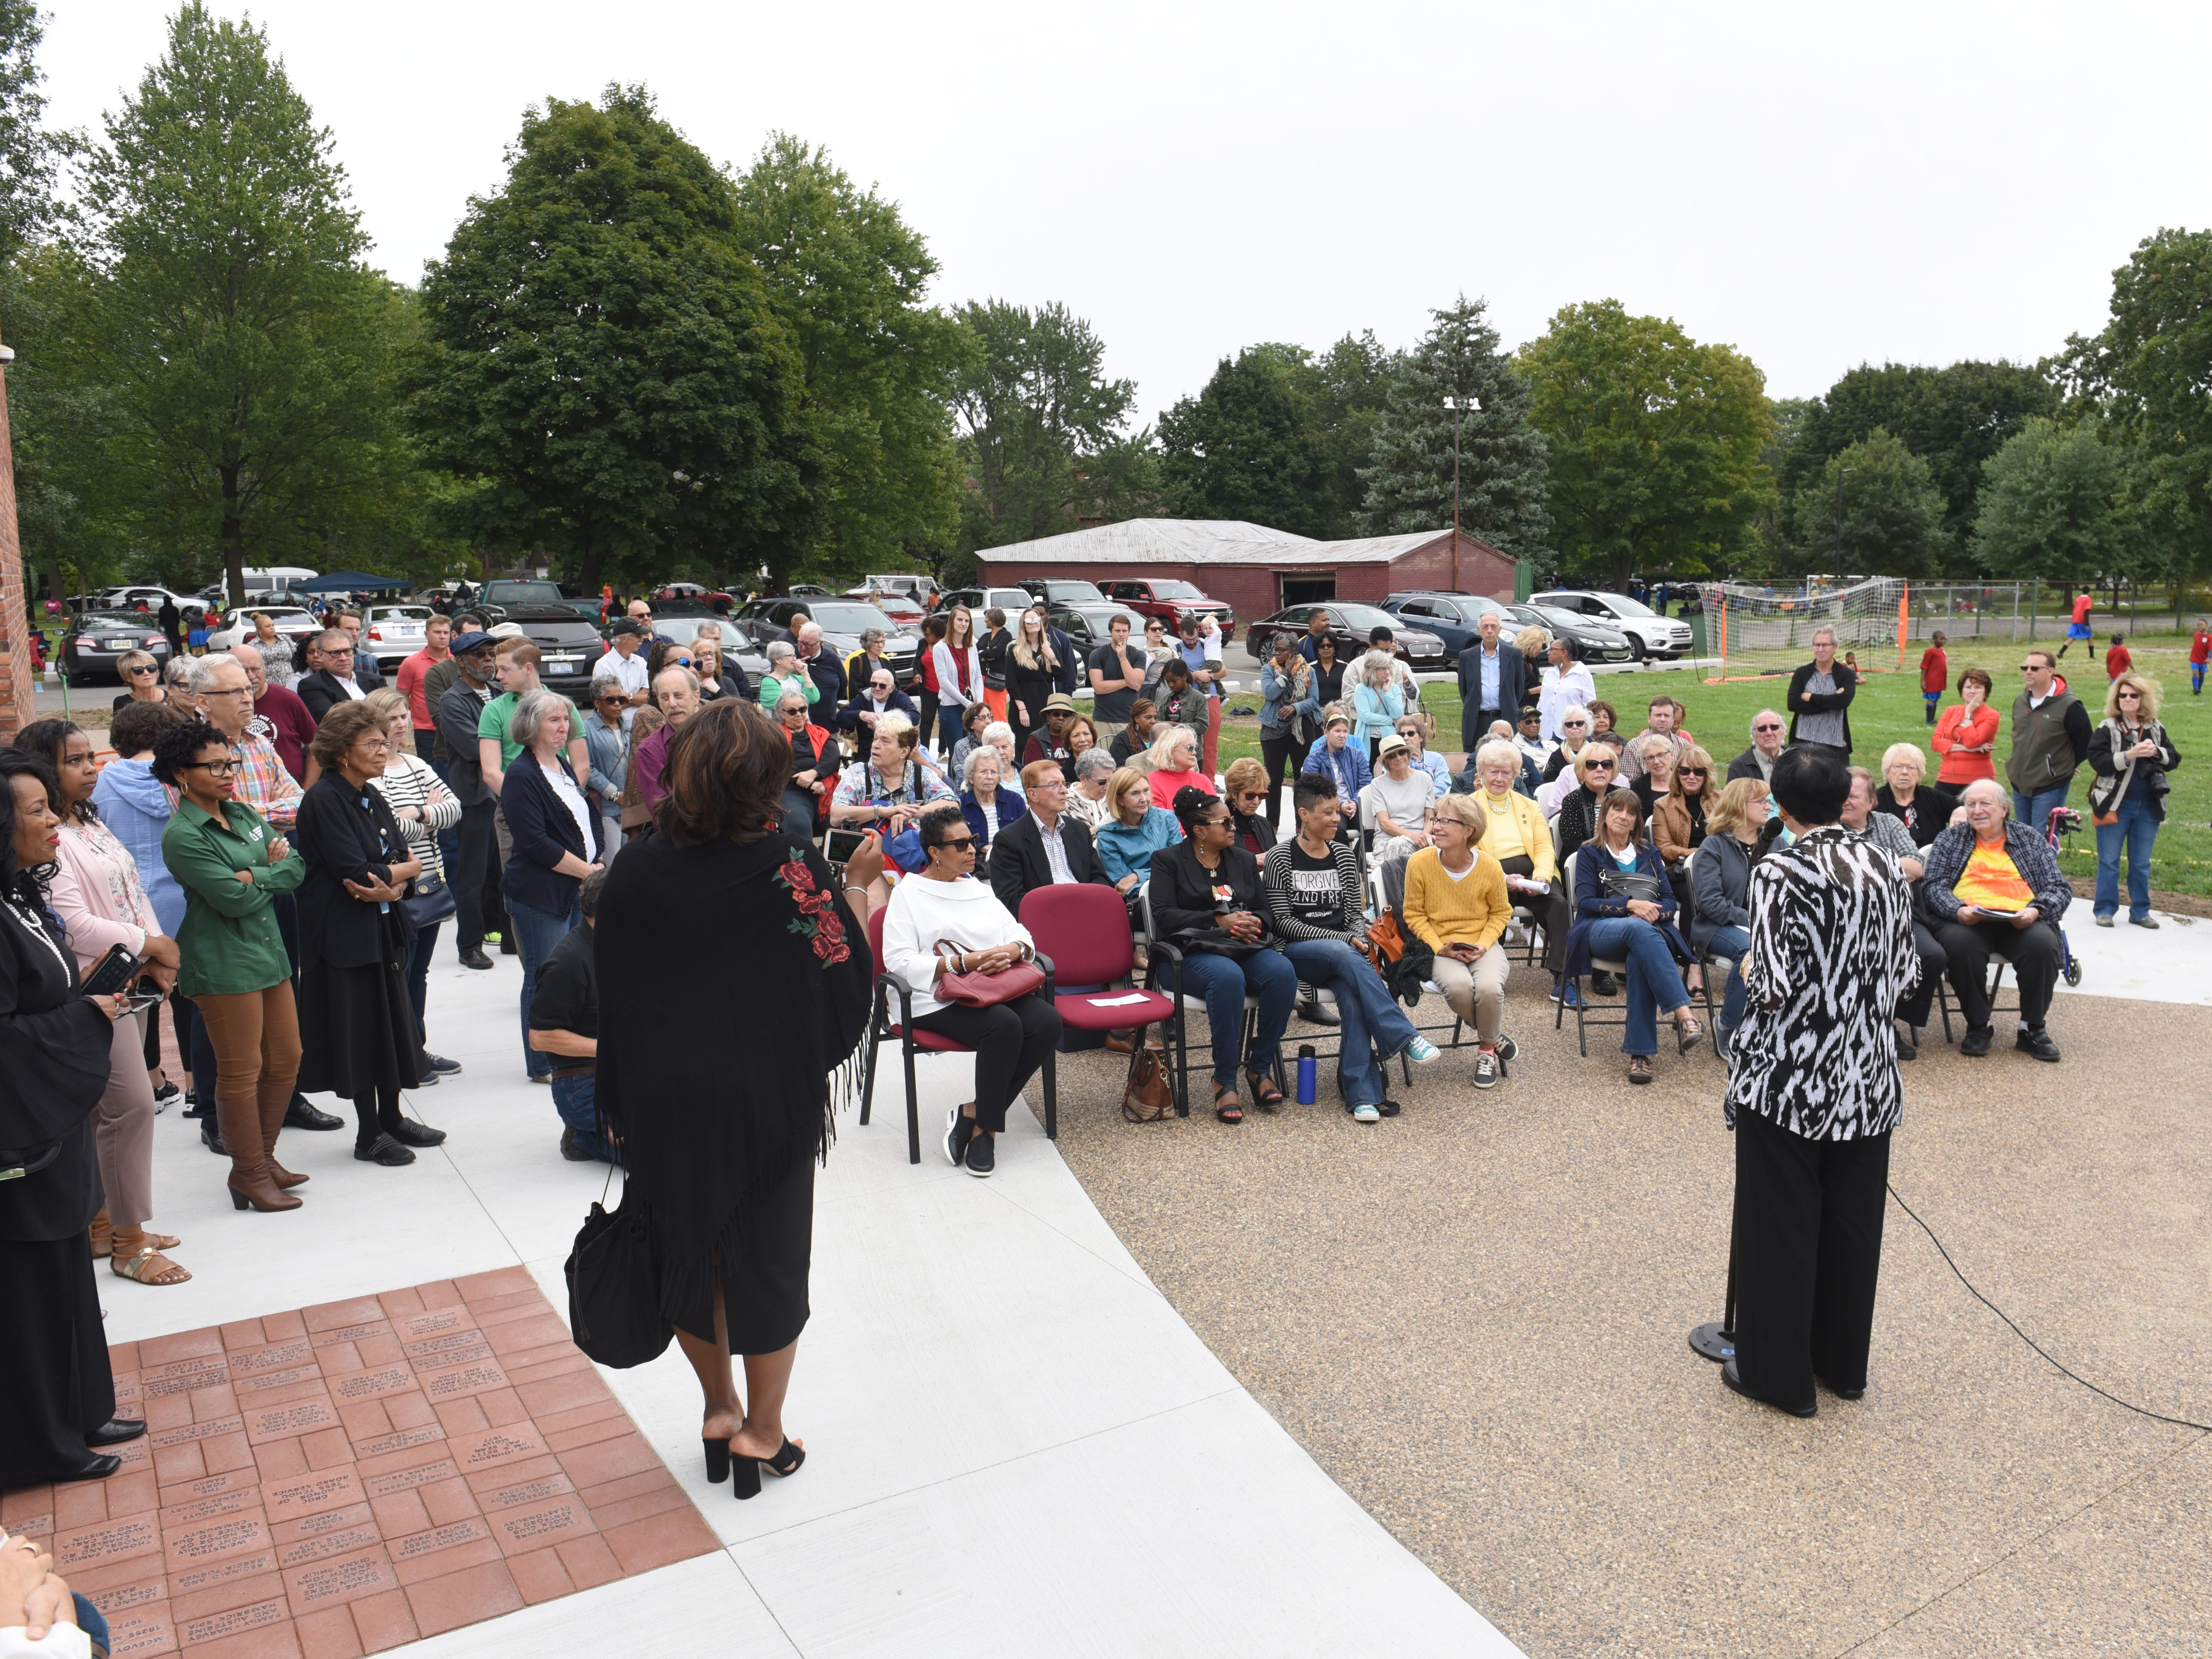 Marsha S.  Bruhn, chair, The Legacy Project of North Rosedale Park,  speaks during a dedication ceremony of a sculpture by artist Charles McGee at The North Rosedale Park Community House in Detroit on Saturday.